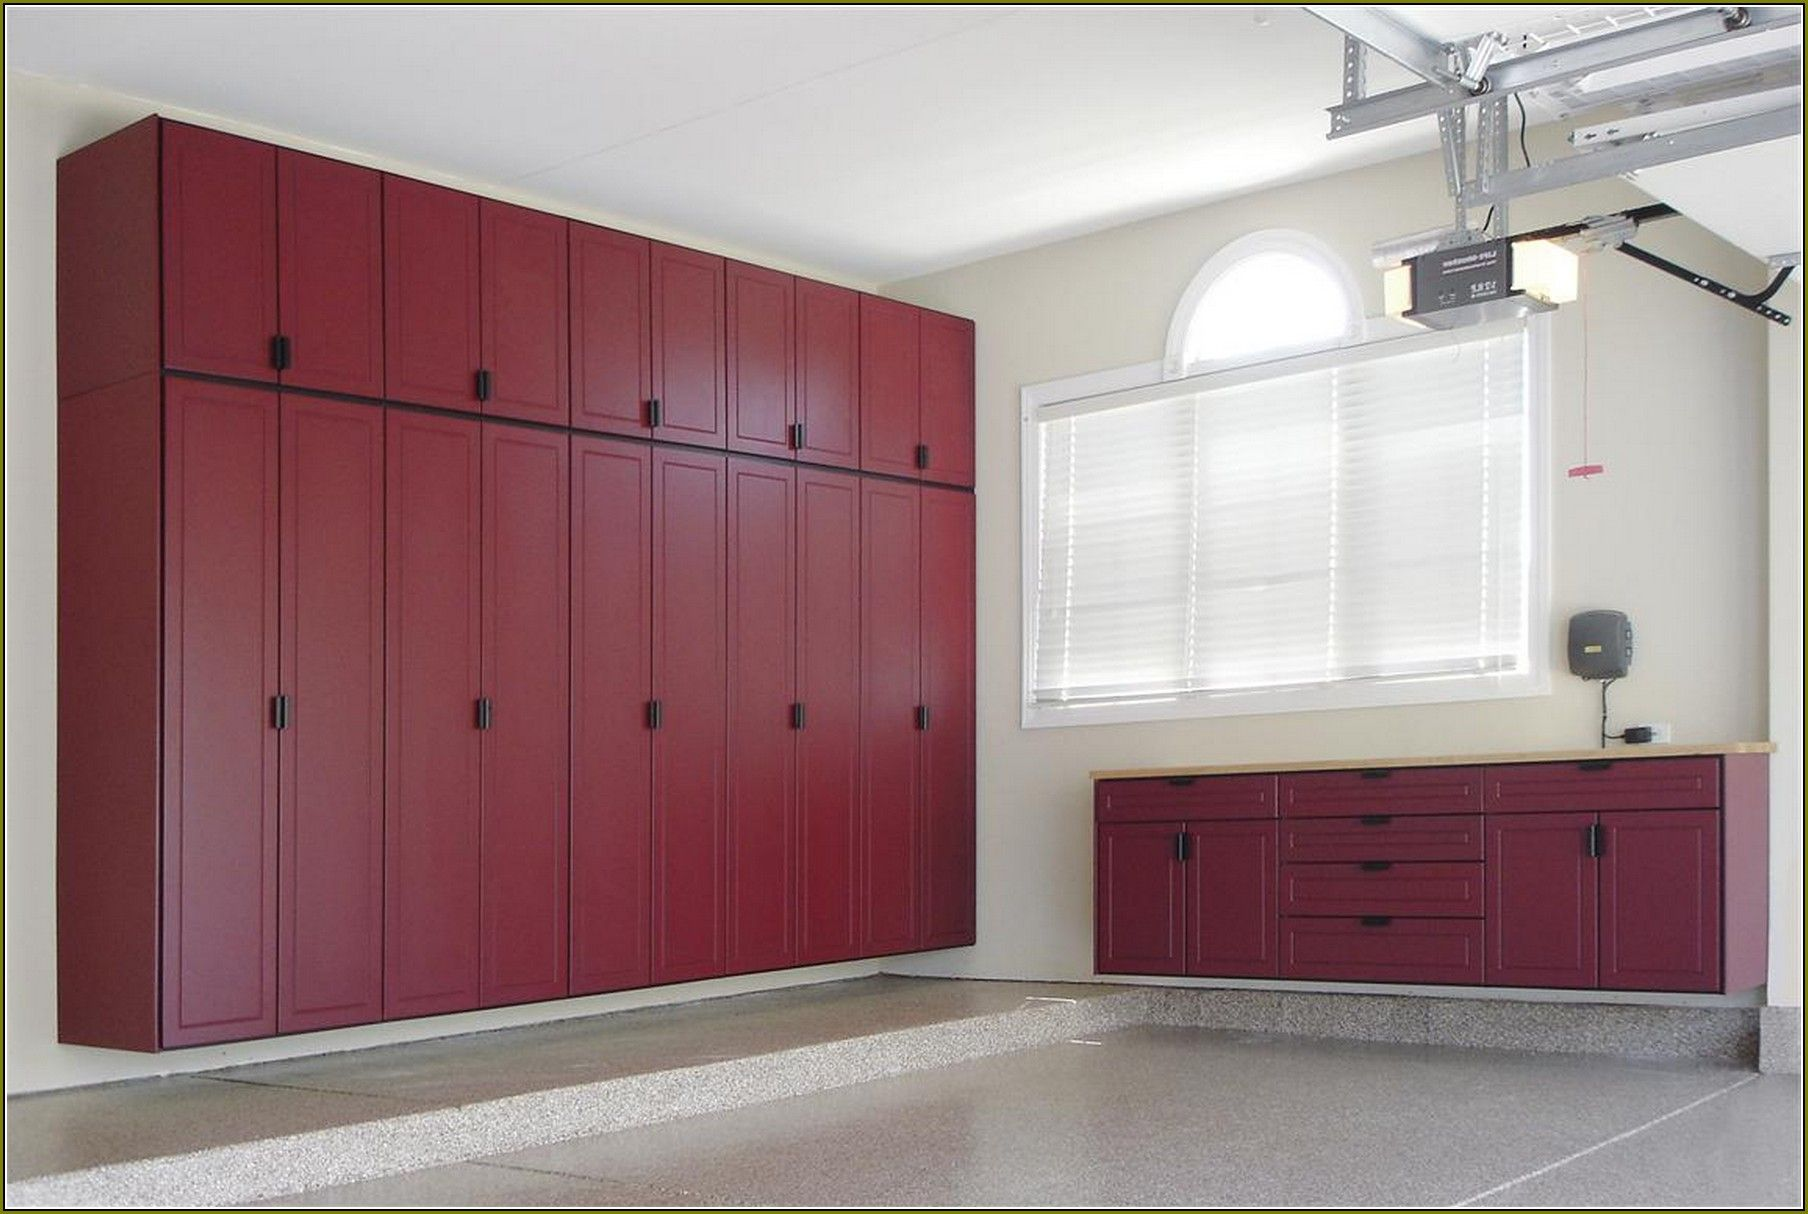 Garage Cabinet Design Plans Garage Cabinets Plans Plywood  House Ideas  Pinterest  Cabinet